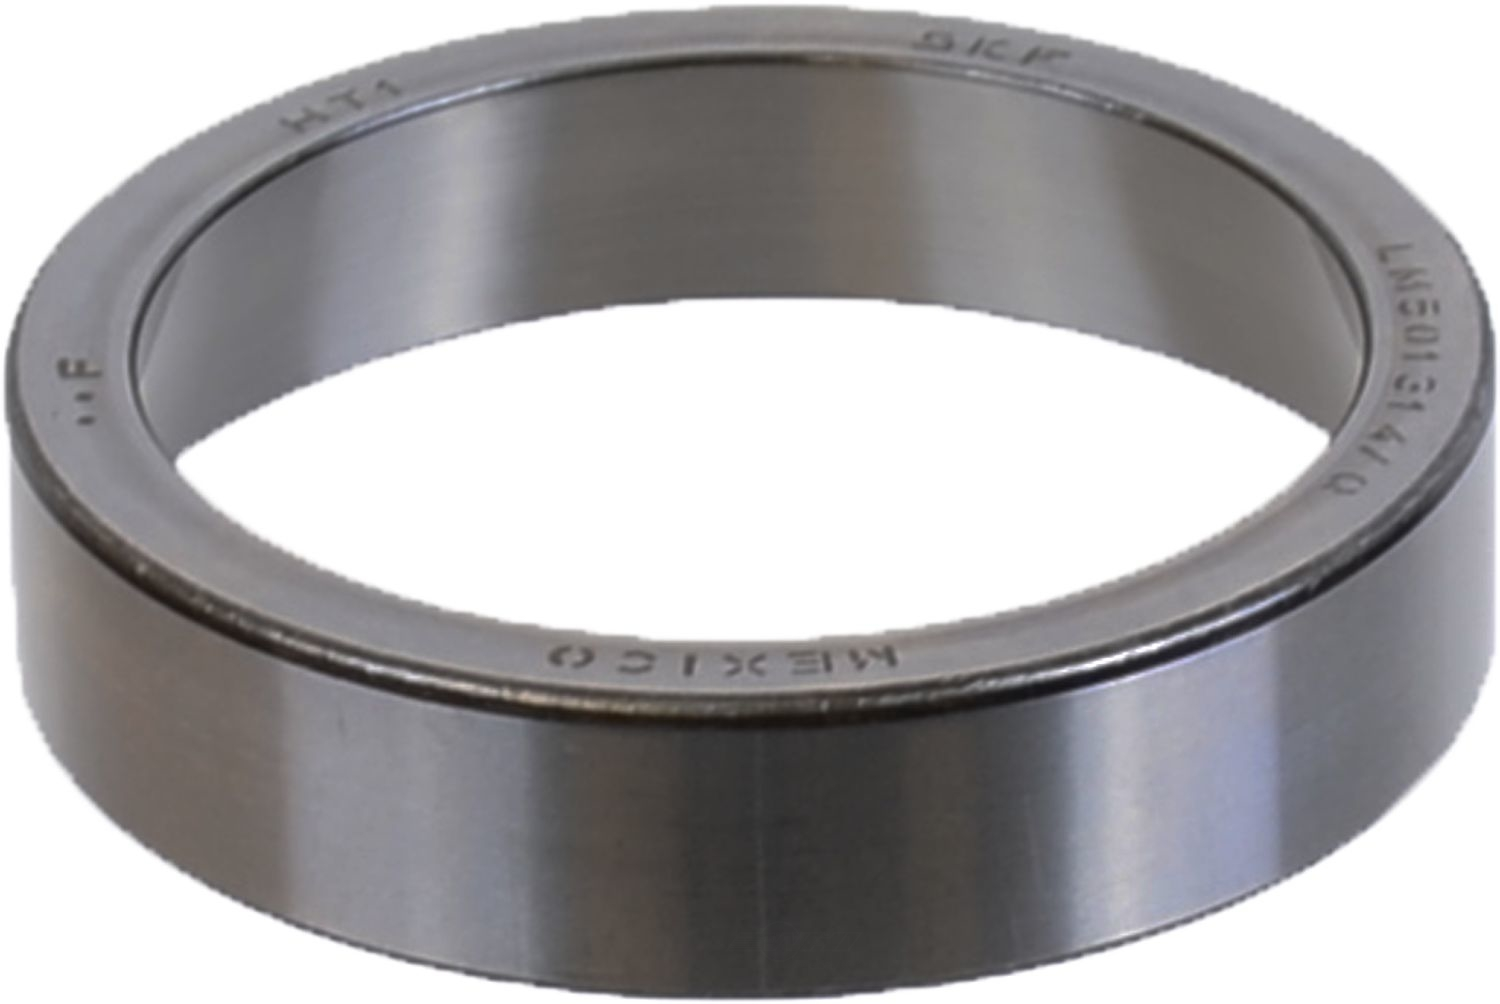 SKF (CHICAGO RAWHIDE) - Axle Differential Race - SKF LM501314 VP